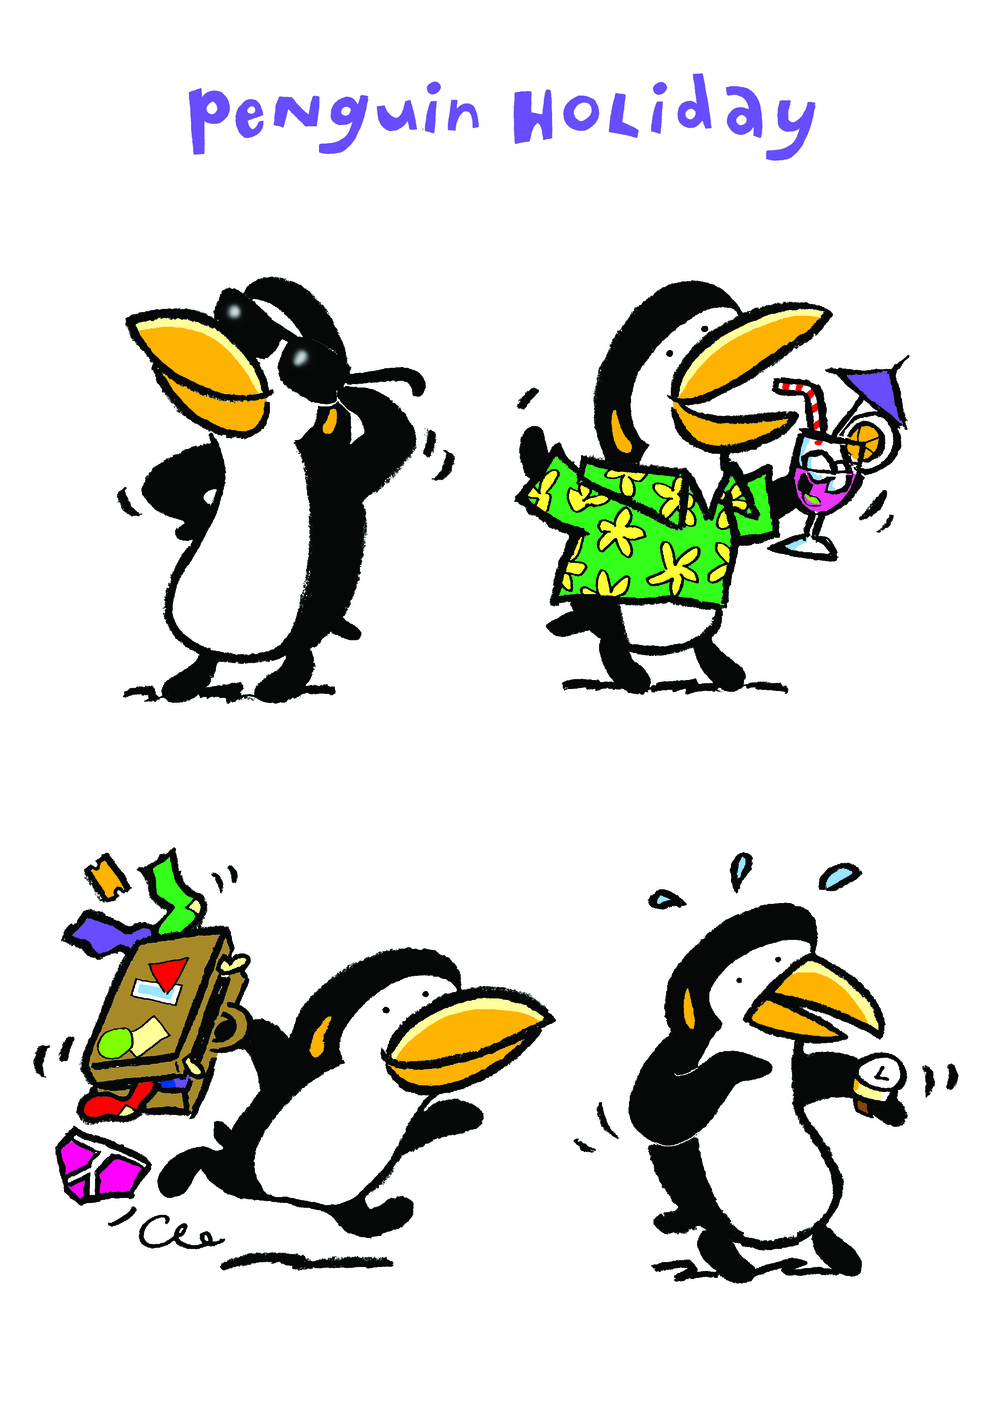 Penguin Holiday copy.jpg